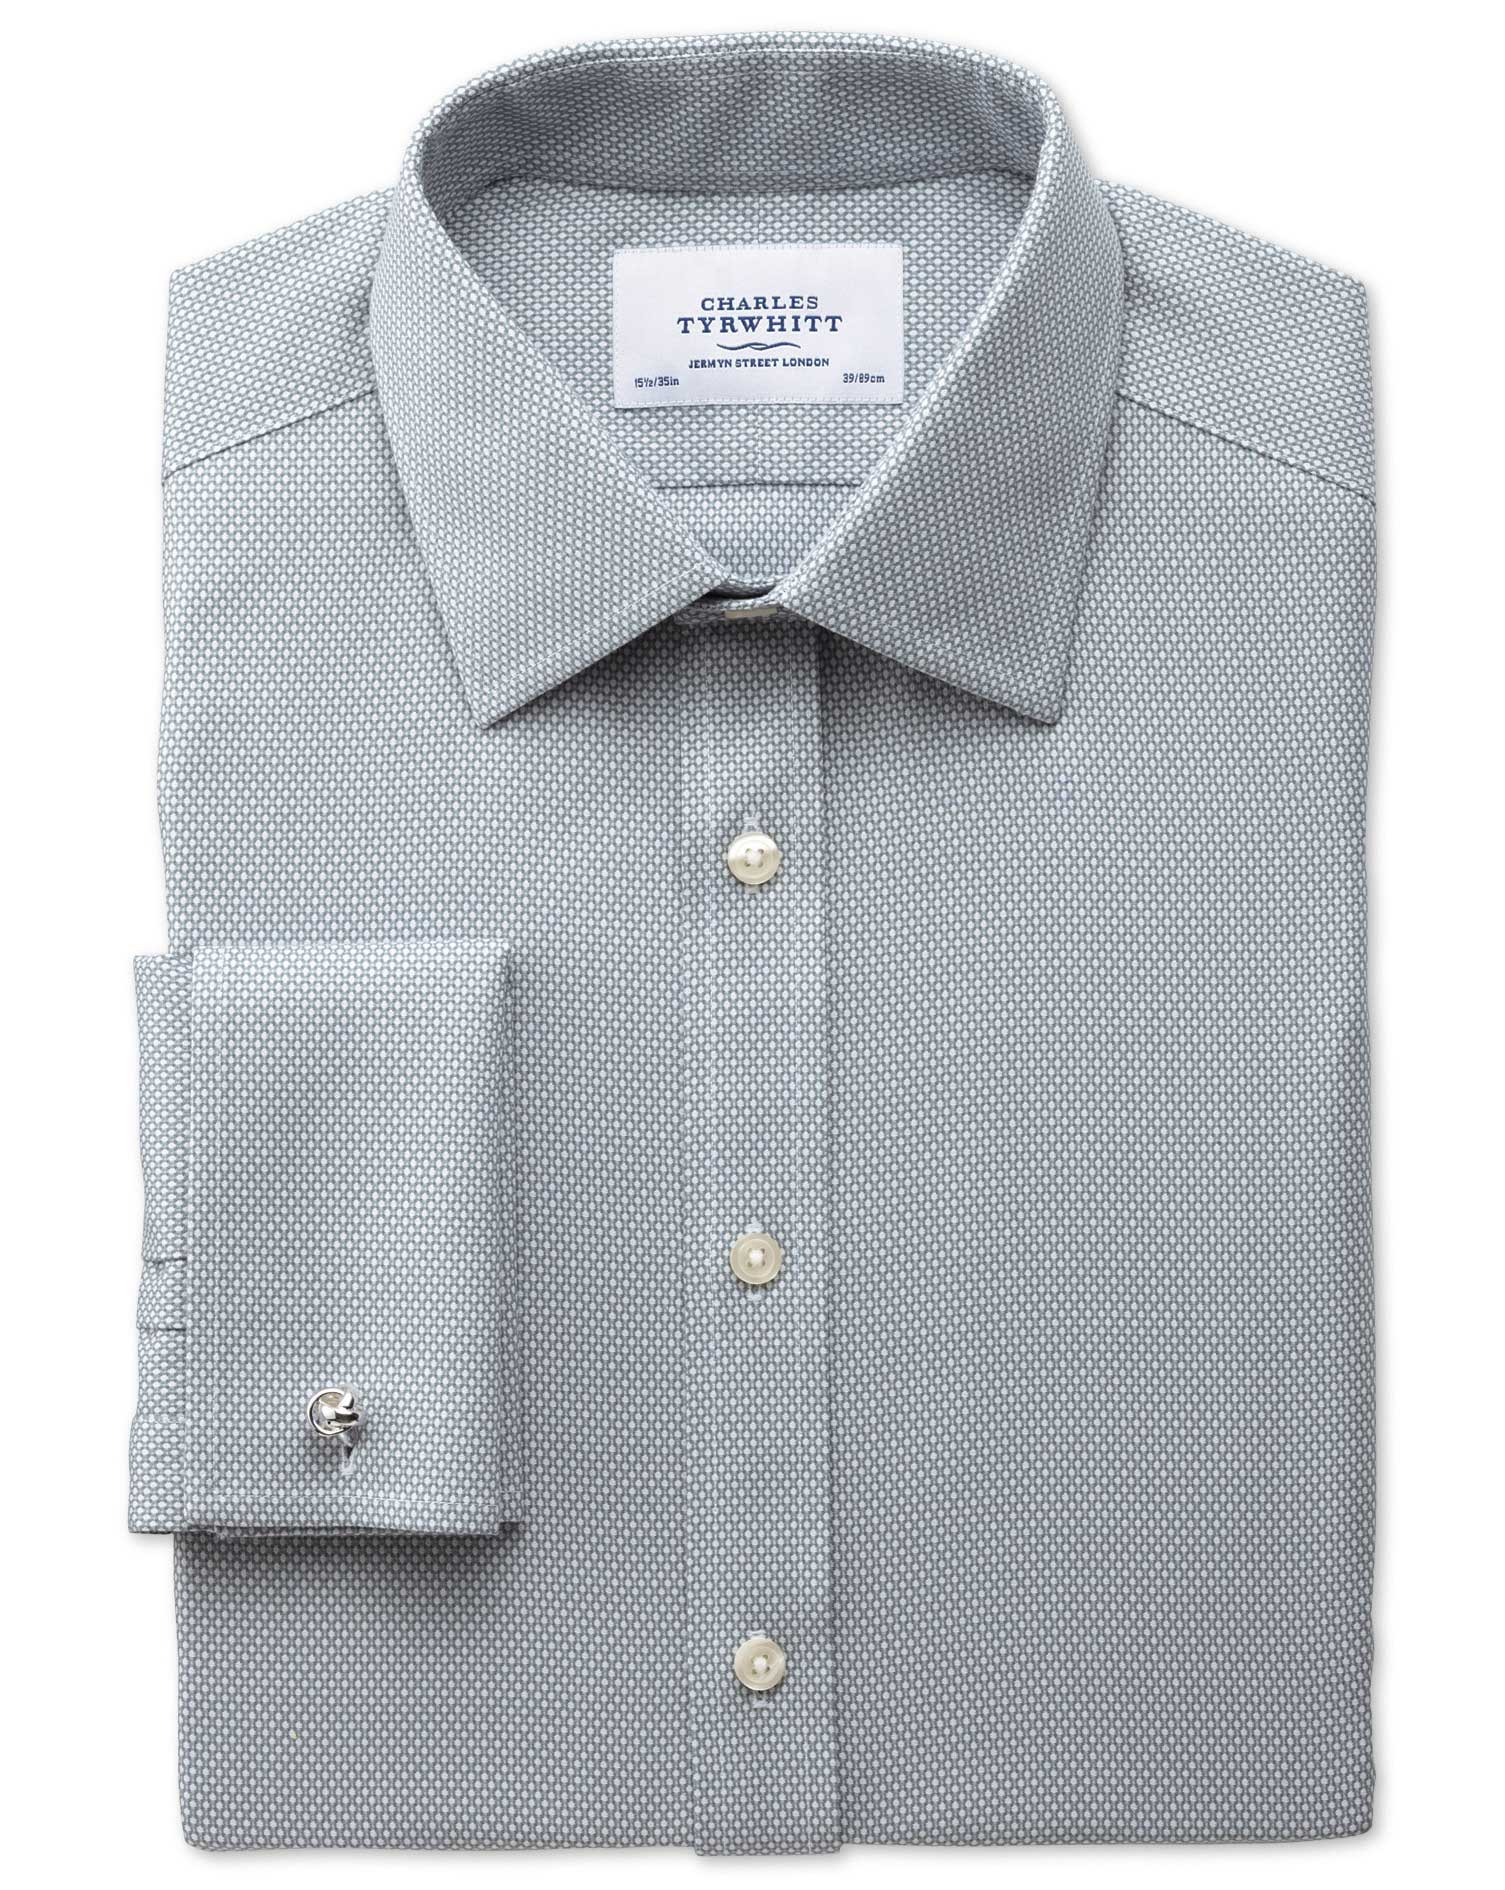 Classic Fit Non-Iron Honeycomb Grey Cotton Formal Shirt Double Cuff Size 15.5/36 by Charles Tyrwhitt